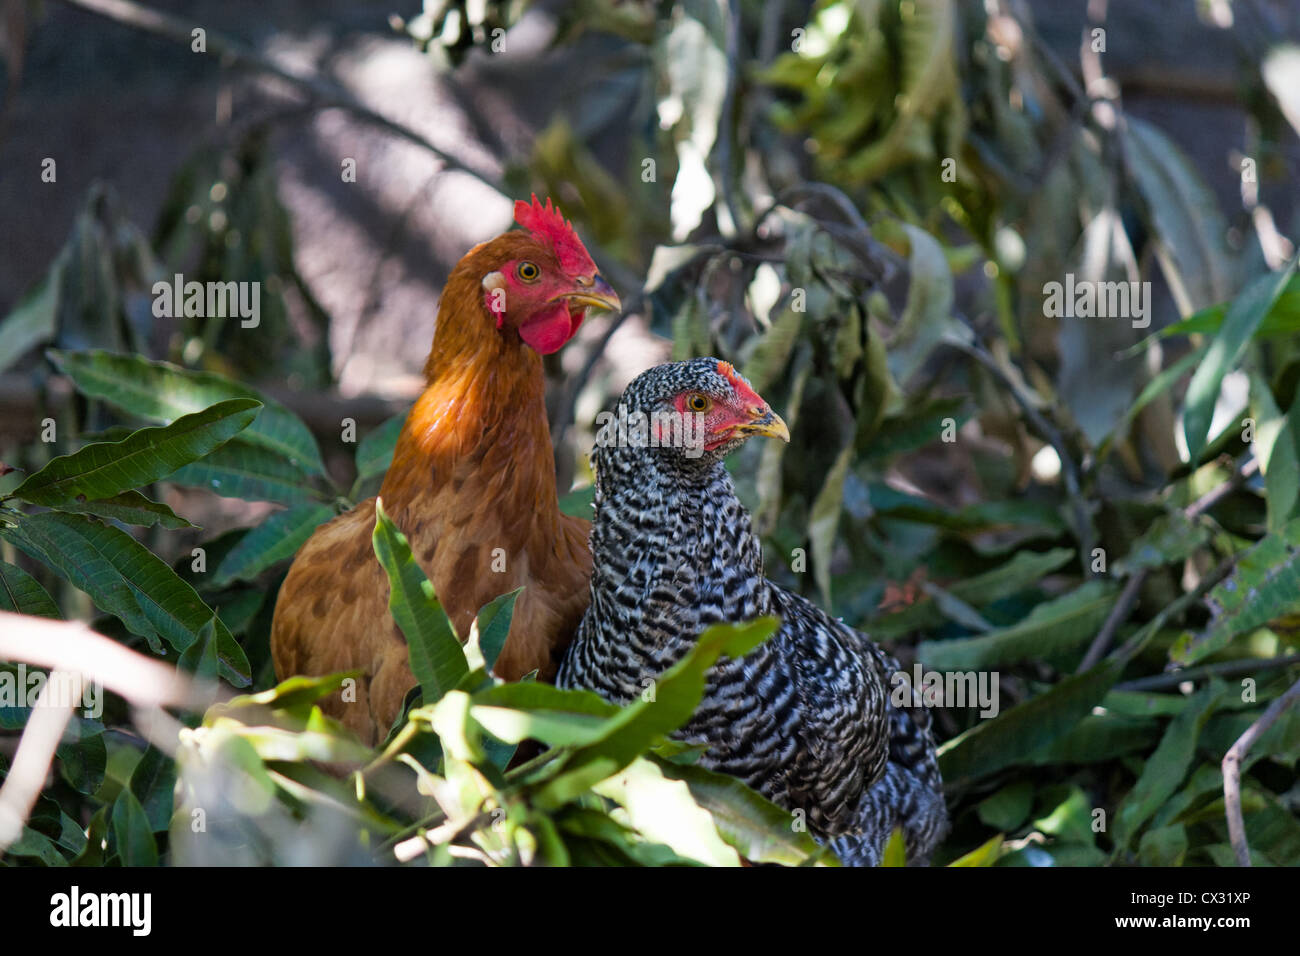 Two hens planning something - Stock Image